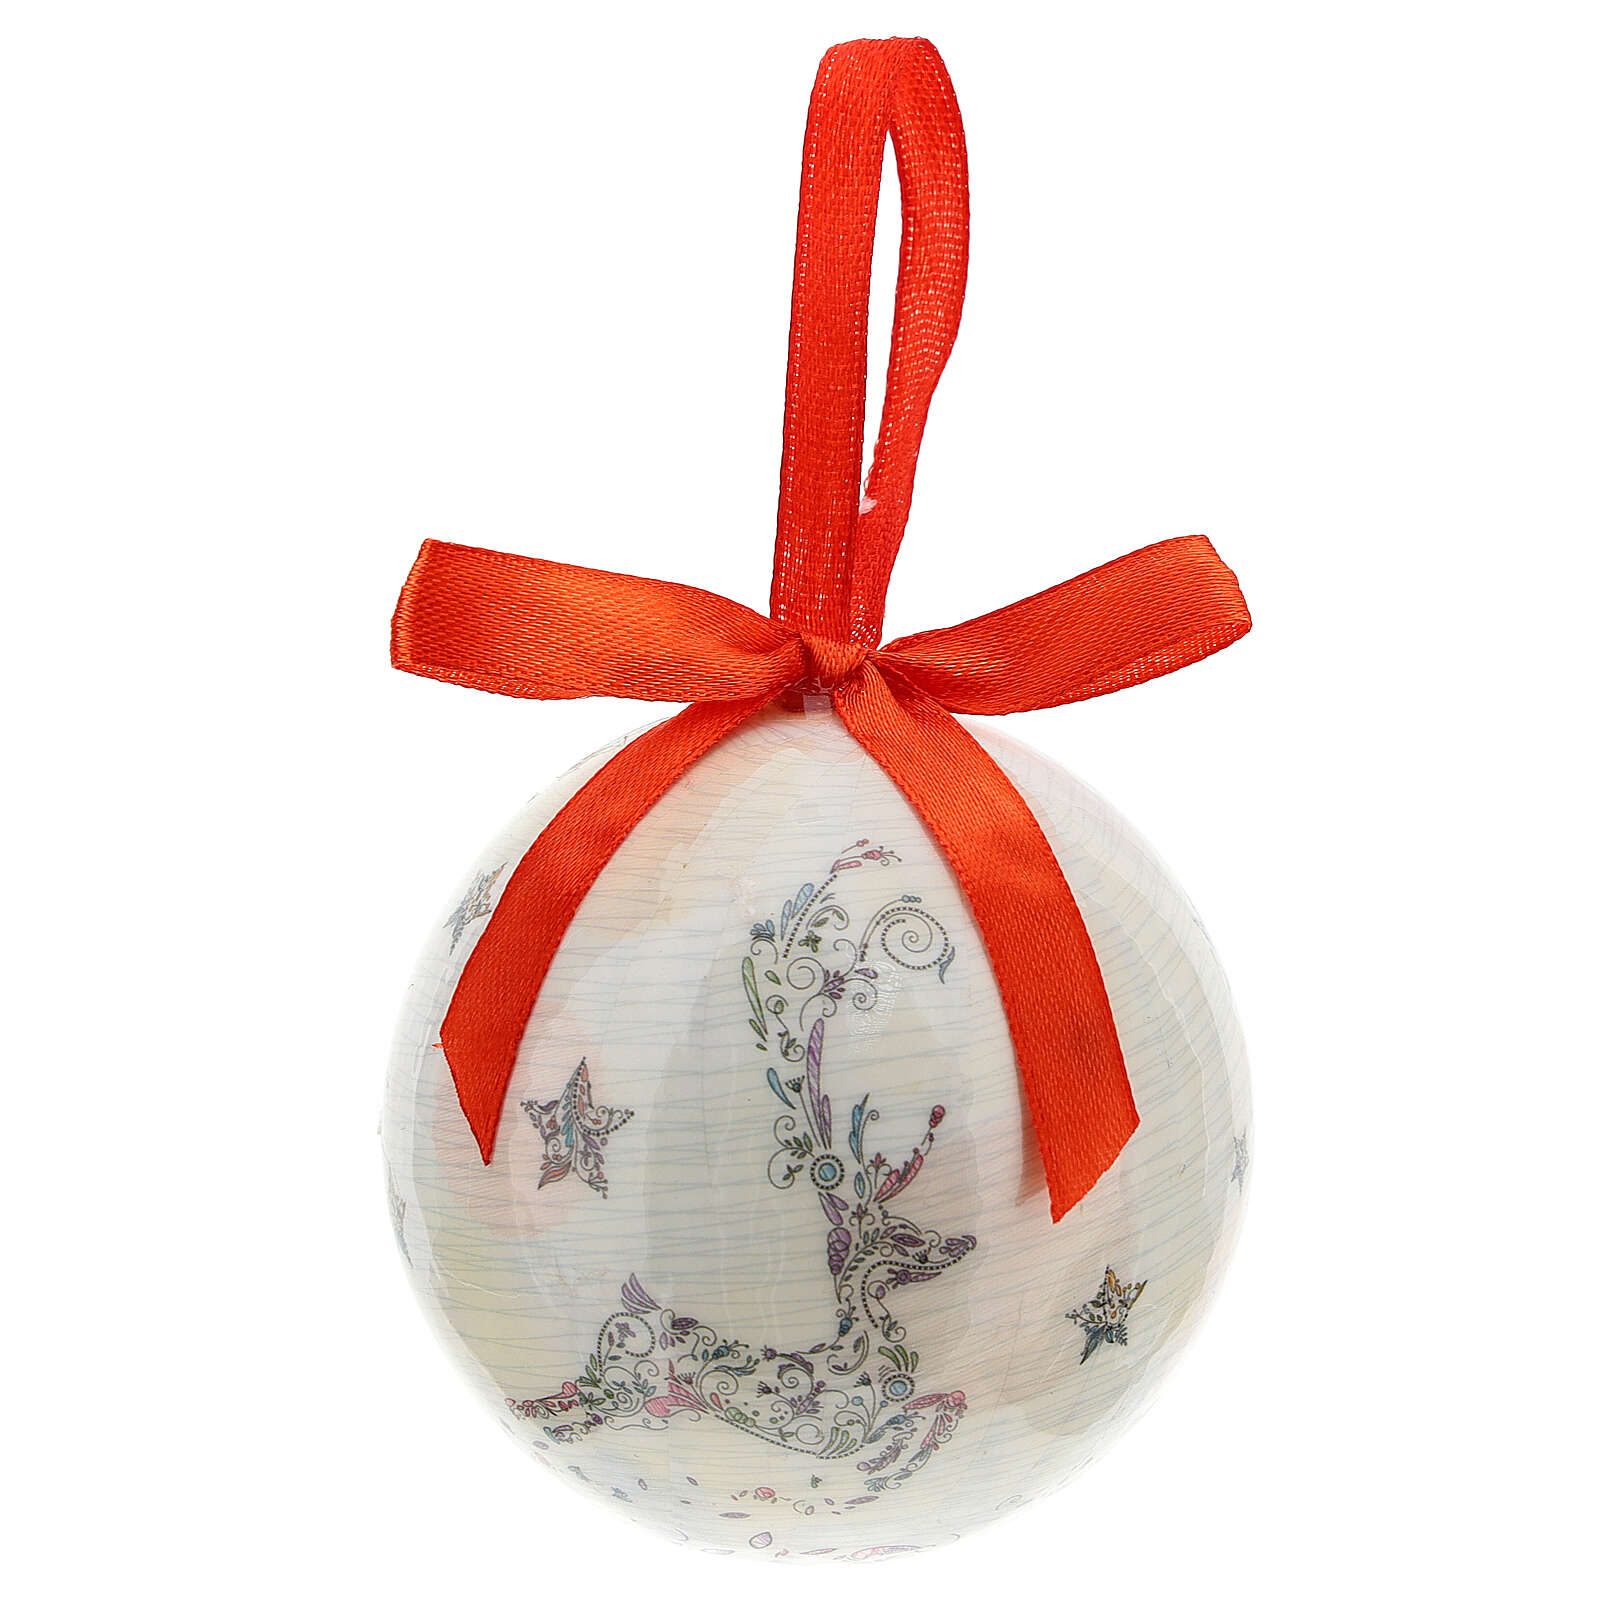 White Christmas ball 75 mm with floral decor (assorted) 4